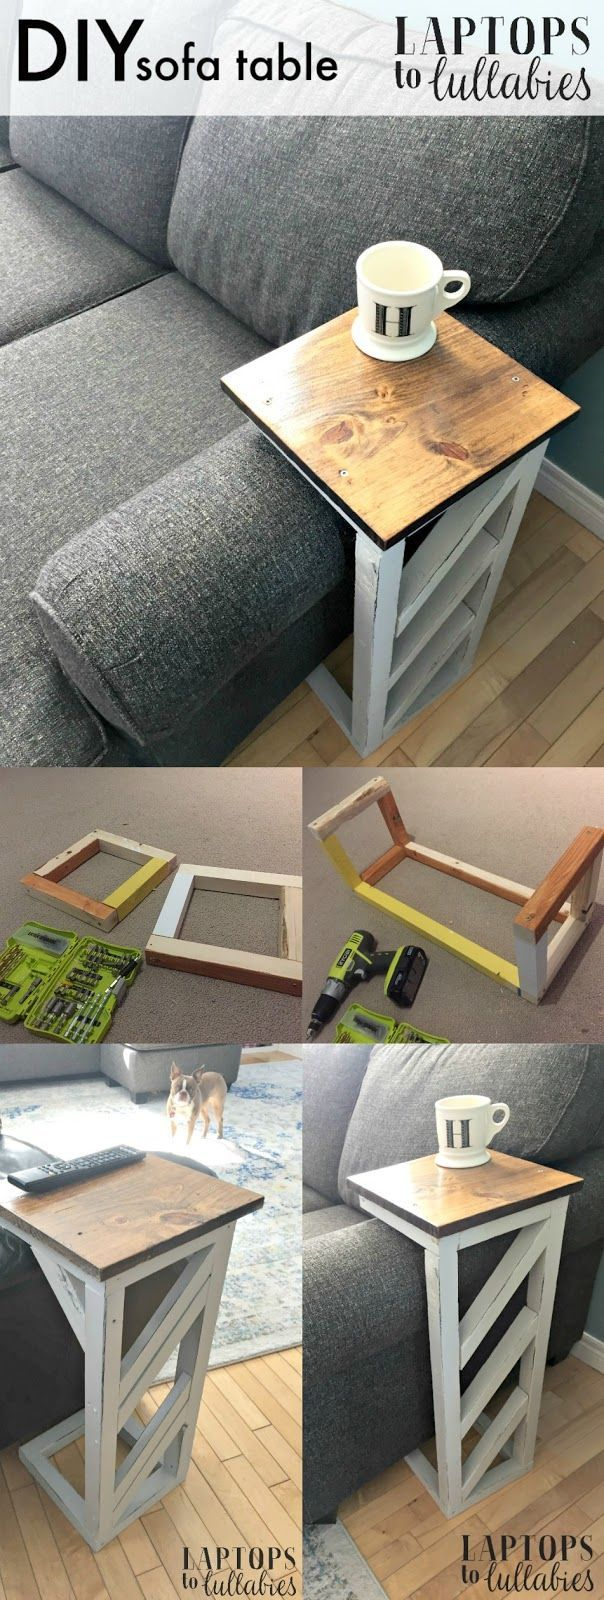 wonderful einfache dekoration und mobel zu oft zu unrecht unterschaetzt moebel aus massivholz 2 #4: Upcycelte möbel · Laptops to Lullabies: Easy DIY sofa tables